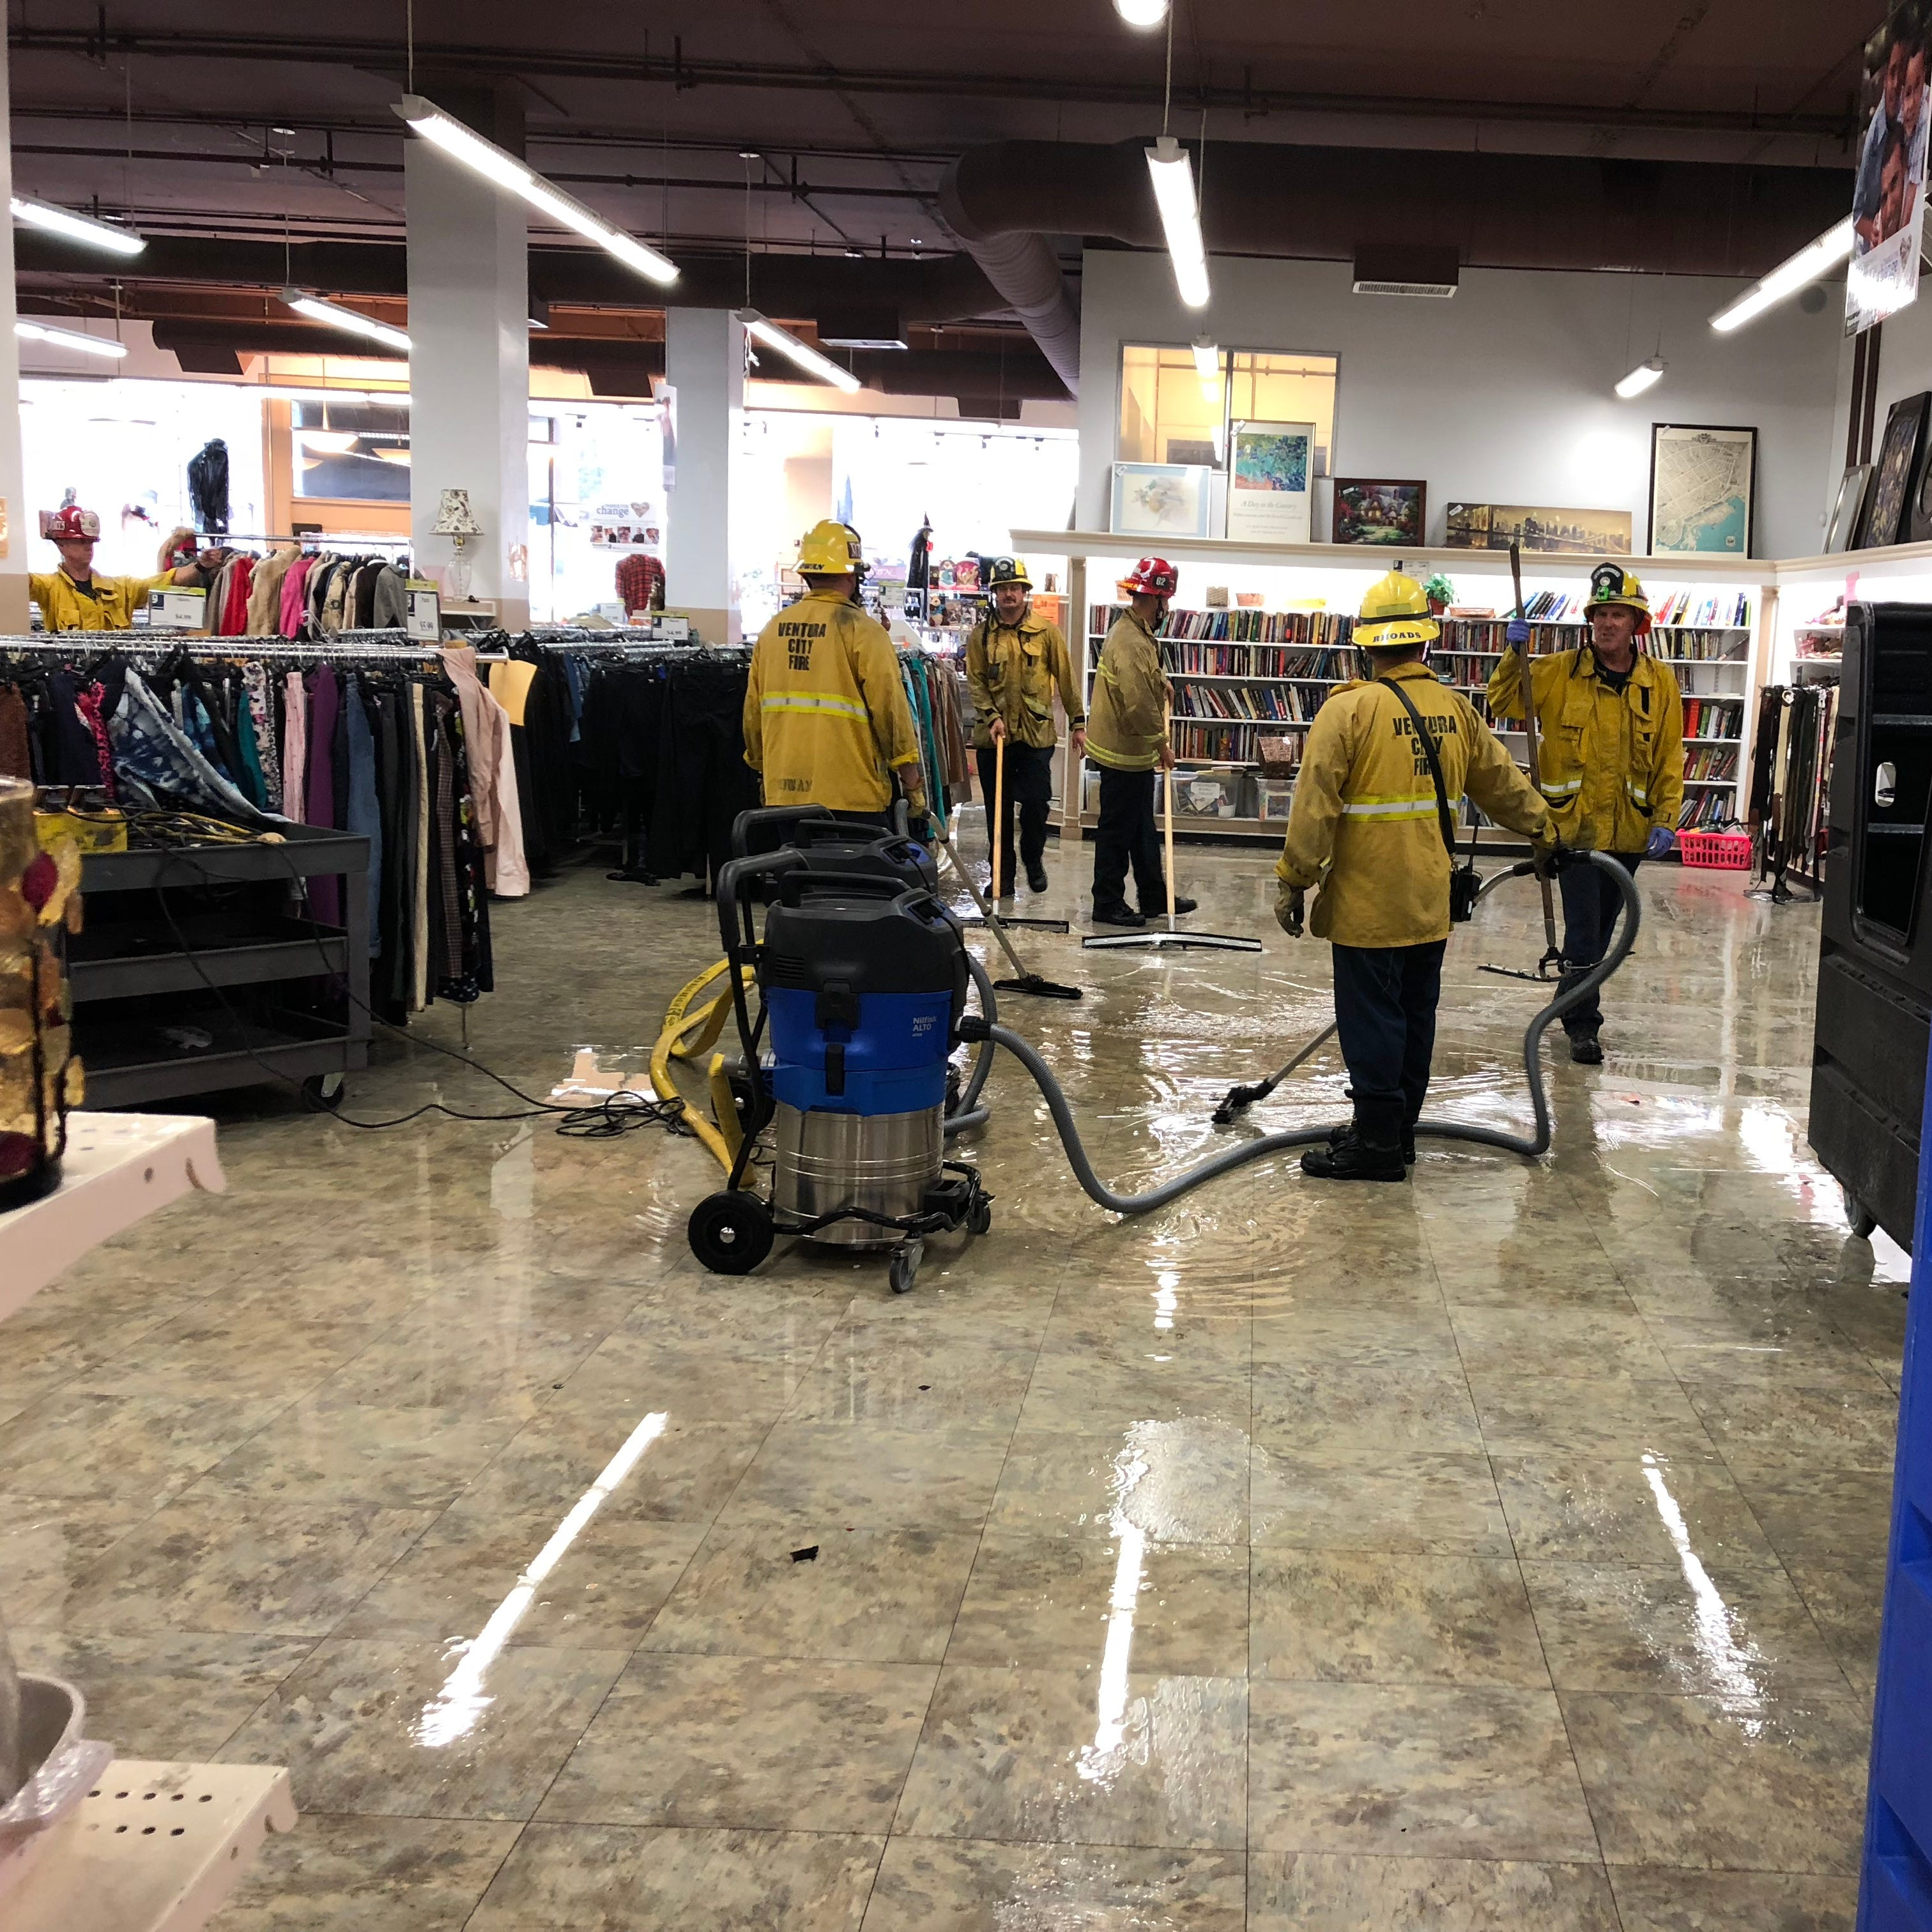 Firefighters assist with flooding at Goodwill in Ventura